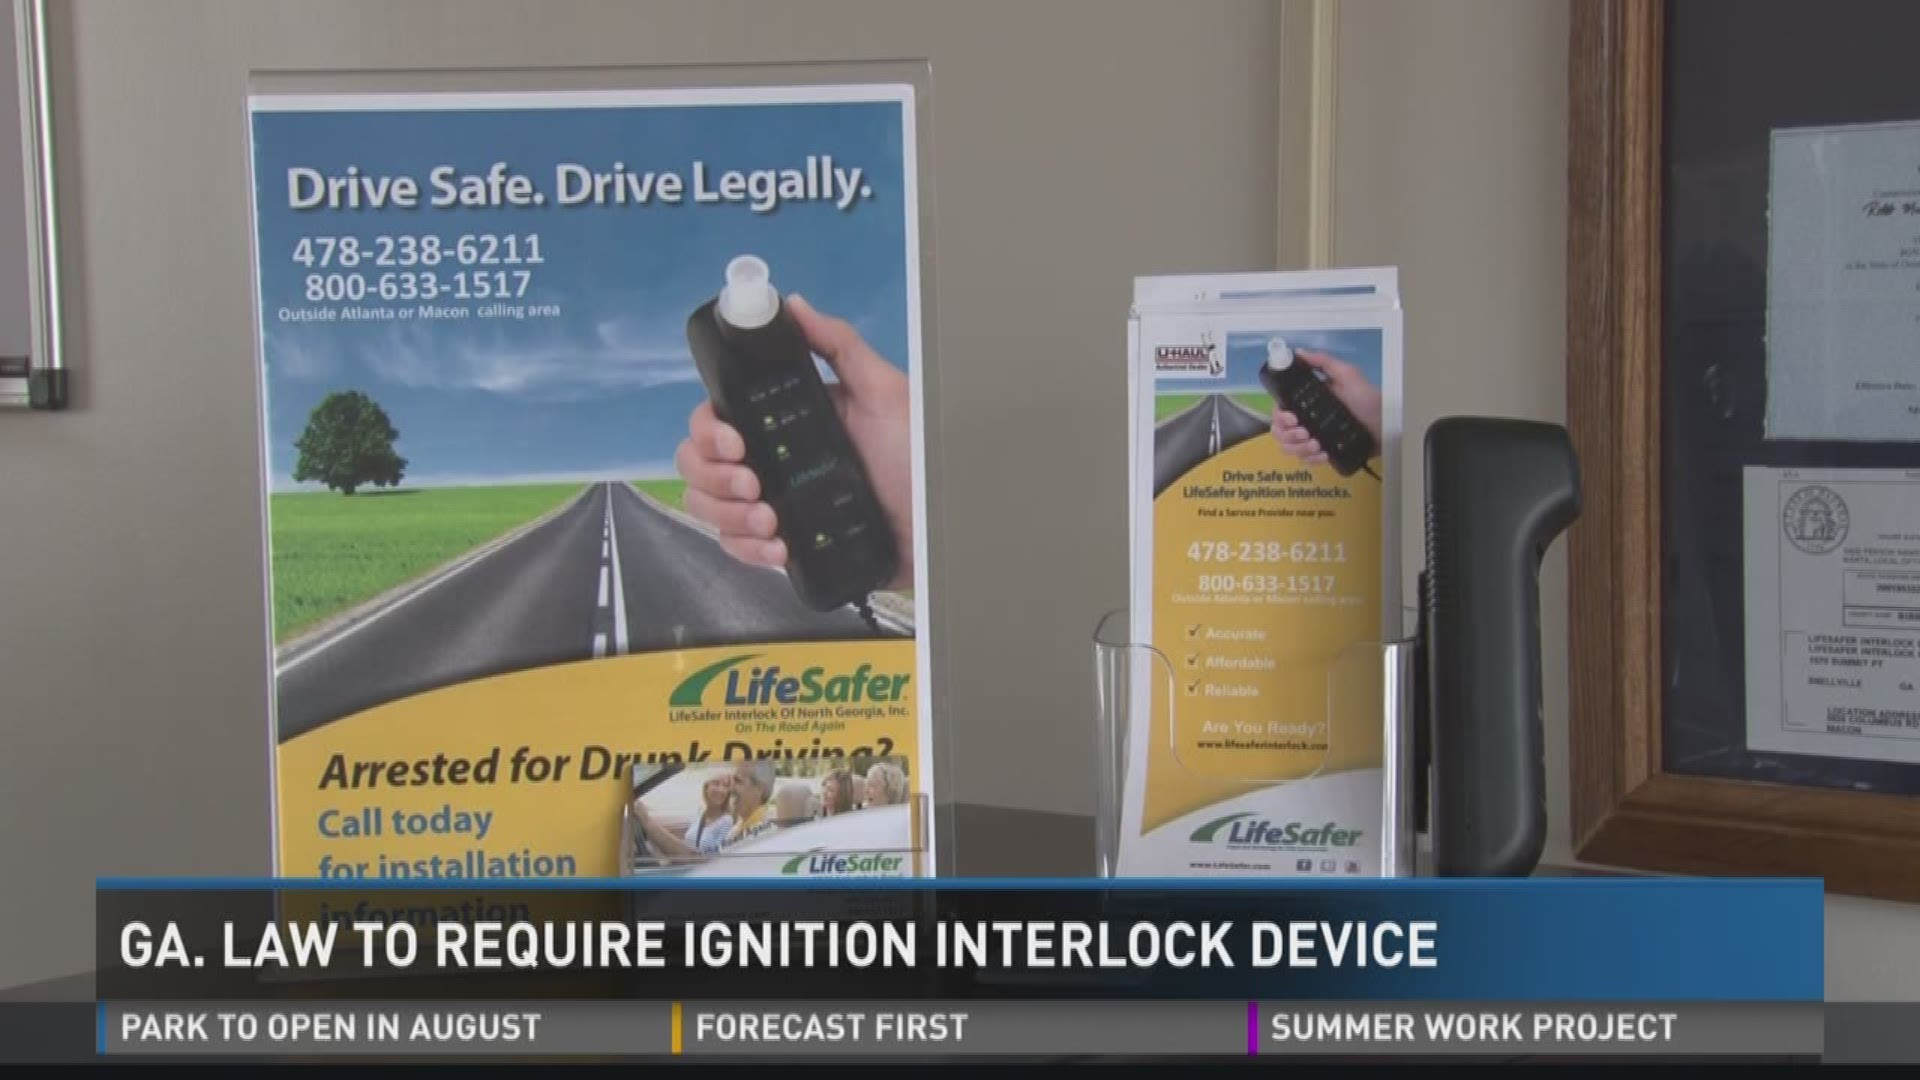 Georgia Law To Require Ignition Interlock Device For Dui